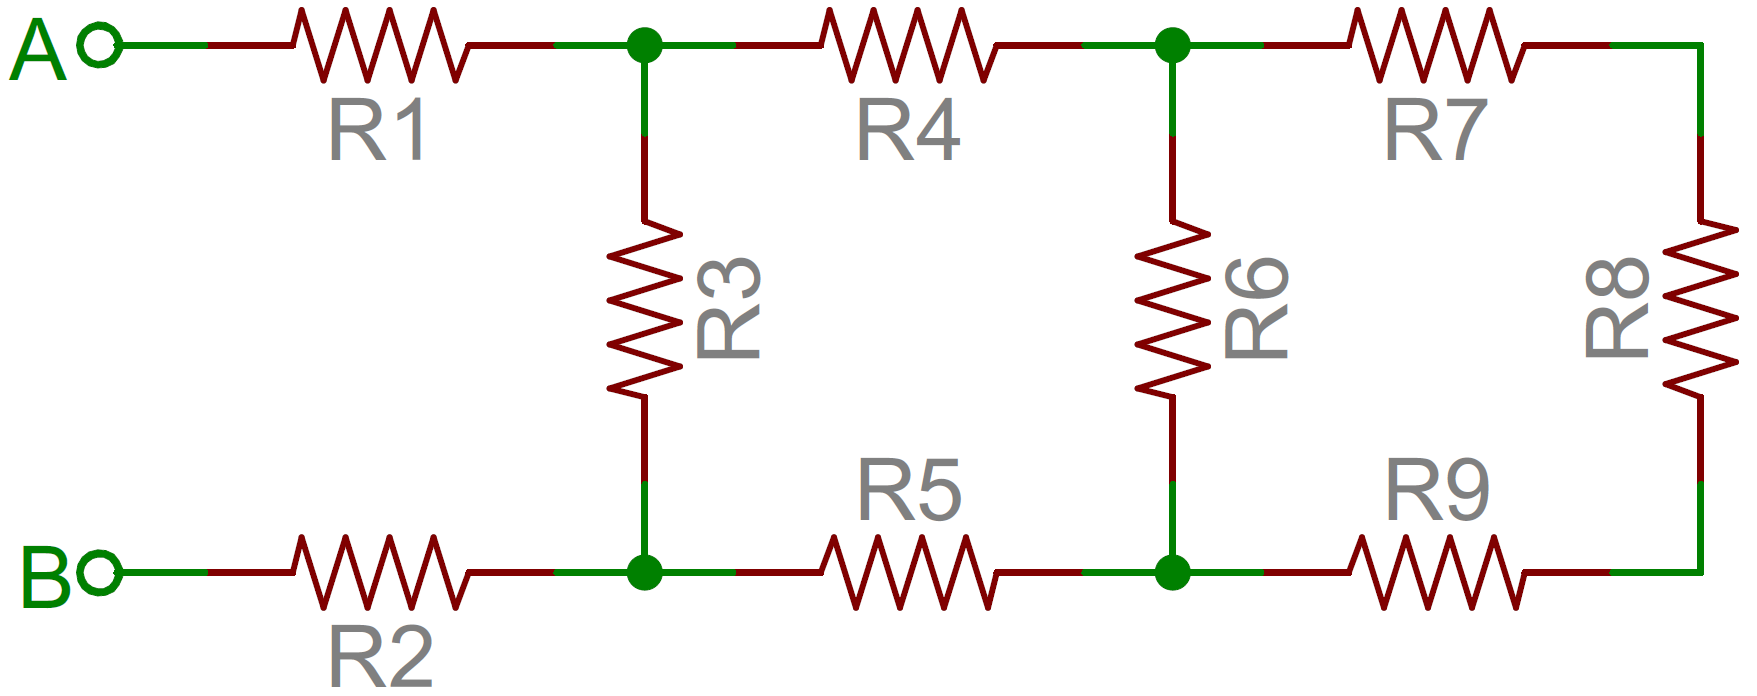 Resistors Parallel Circuit Diagram In A An Example Of Resistor Network